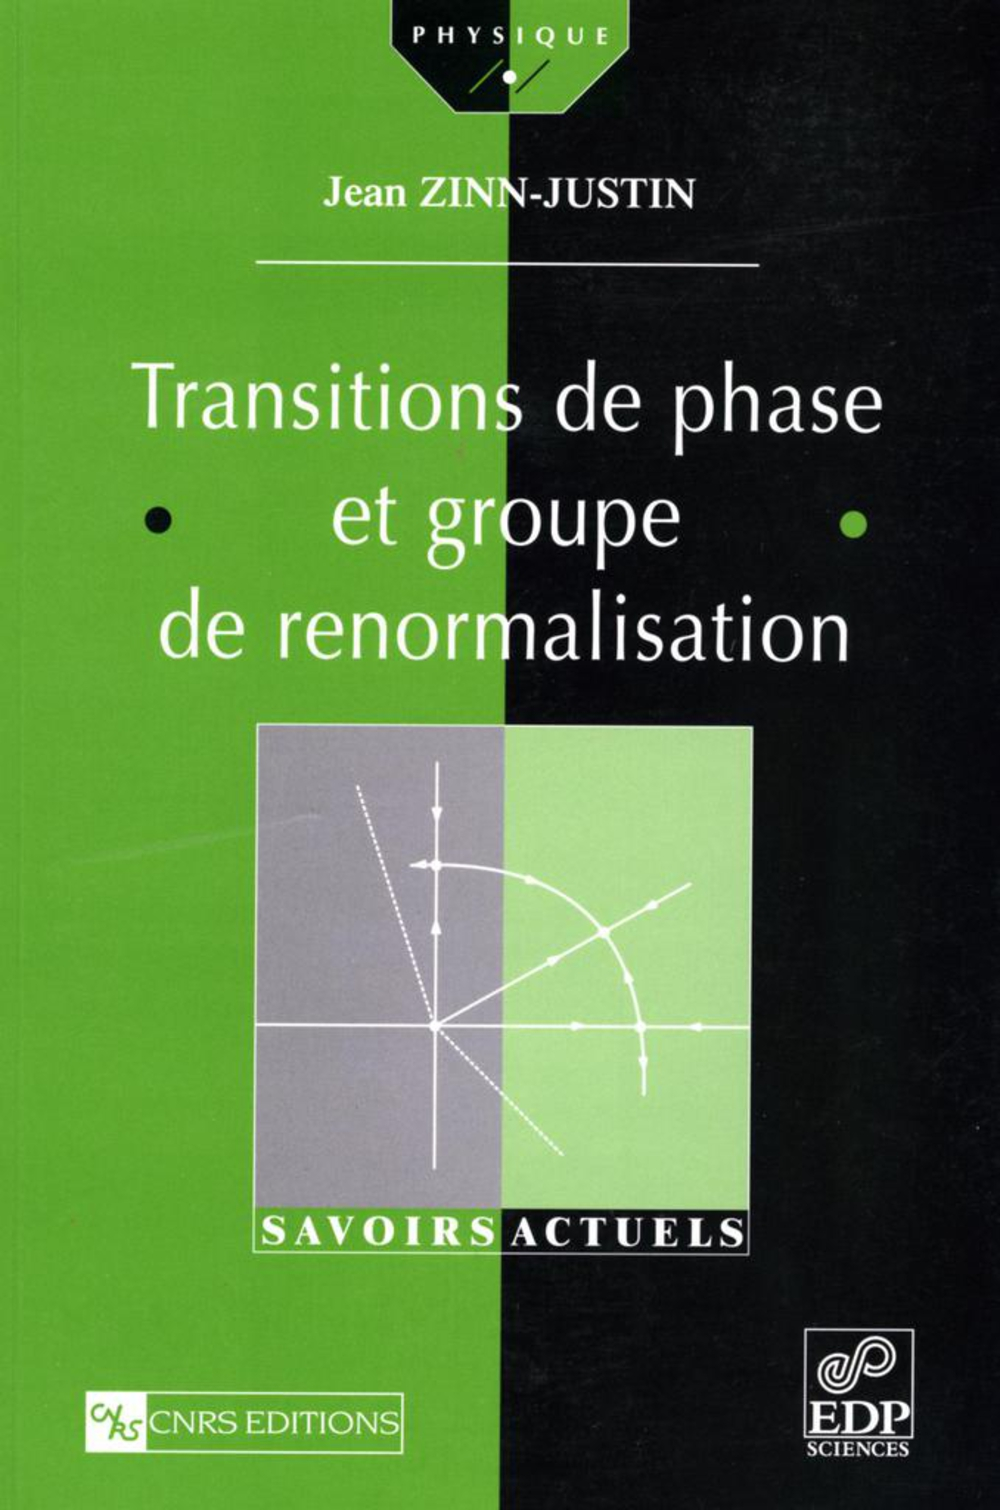 Transitions de phase et groupe de renormalisation